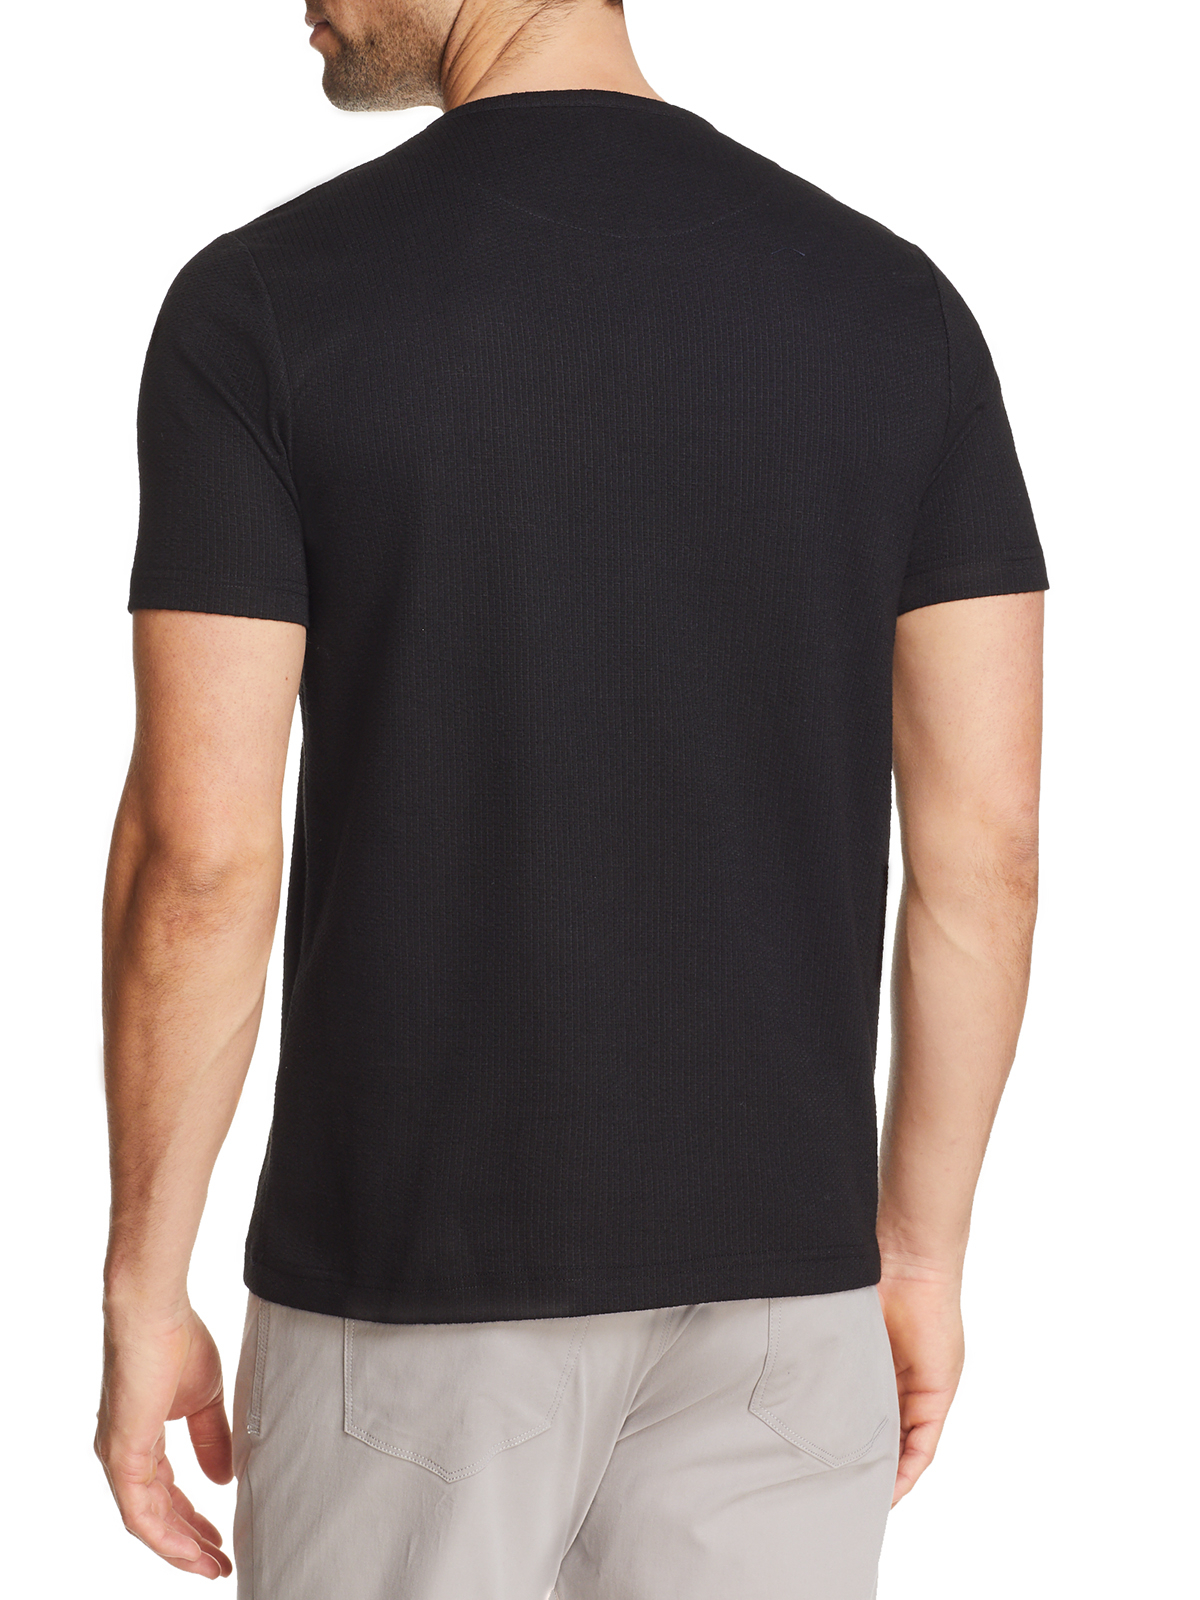 SOLID WAFFLE KNIT SHORT SLEEVE HENLEY